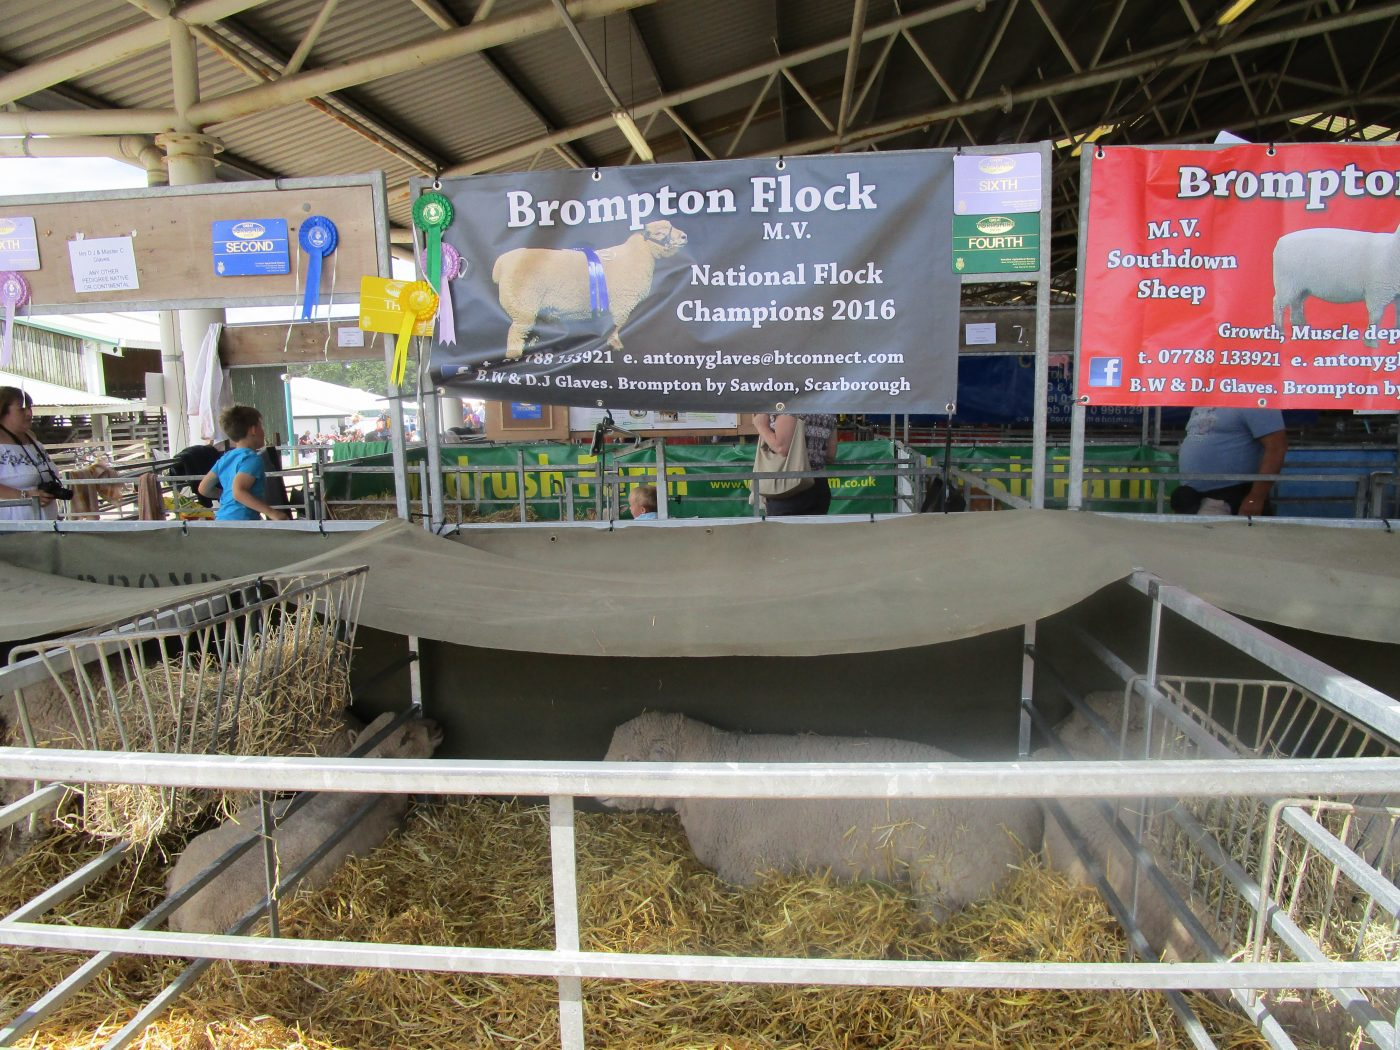 A Virtual Visit to the Great Yorkshire Show